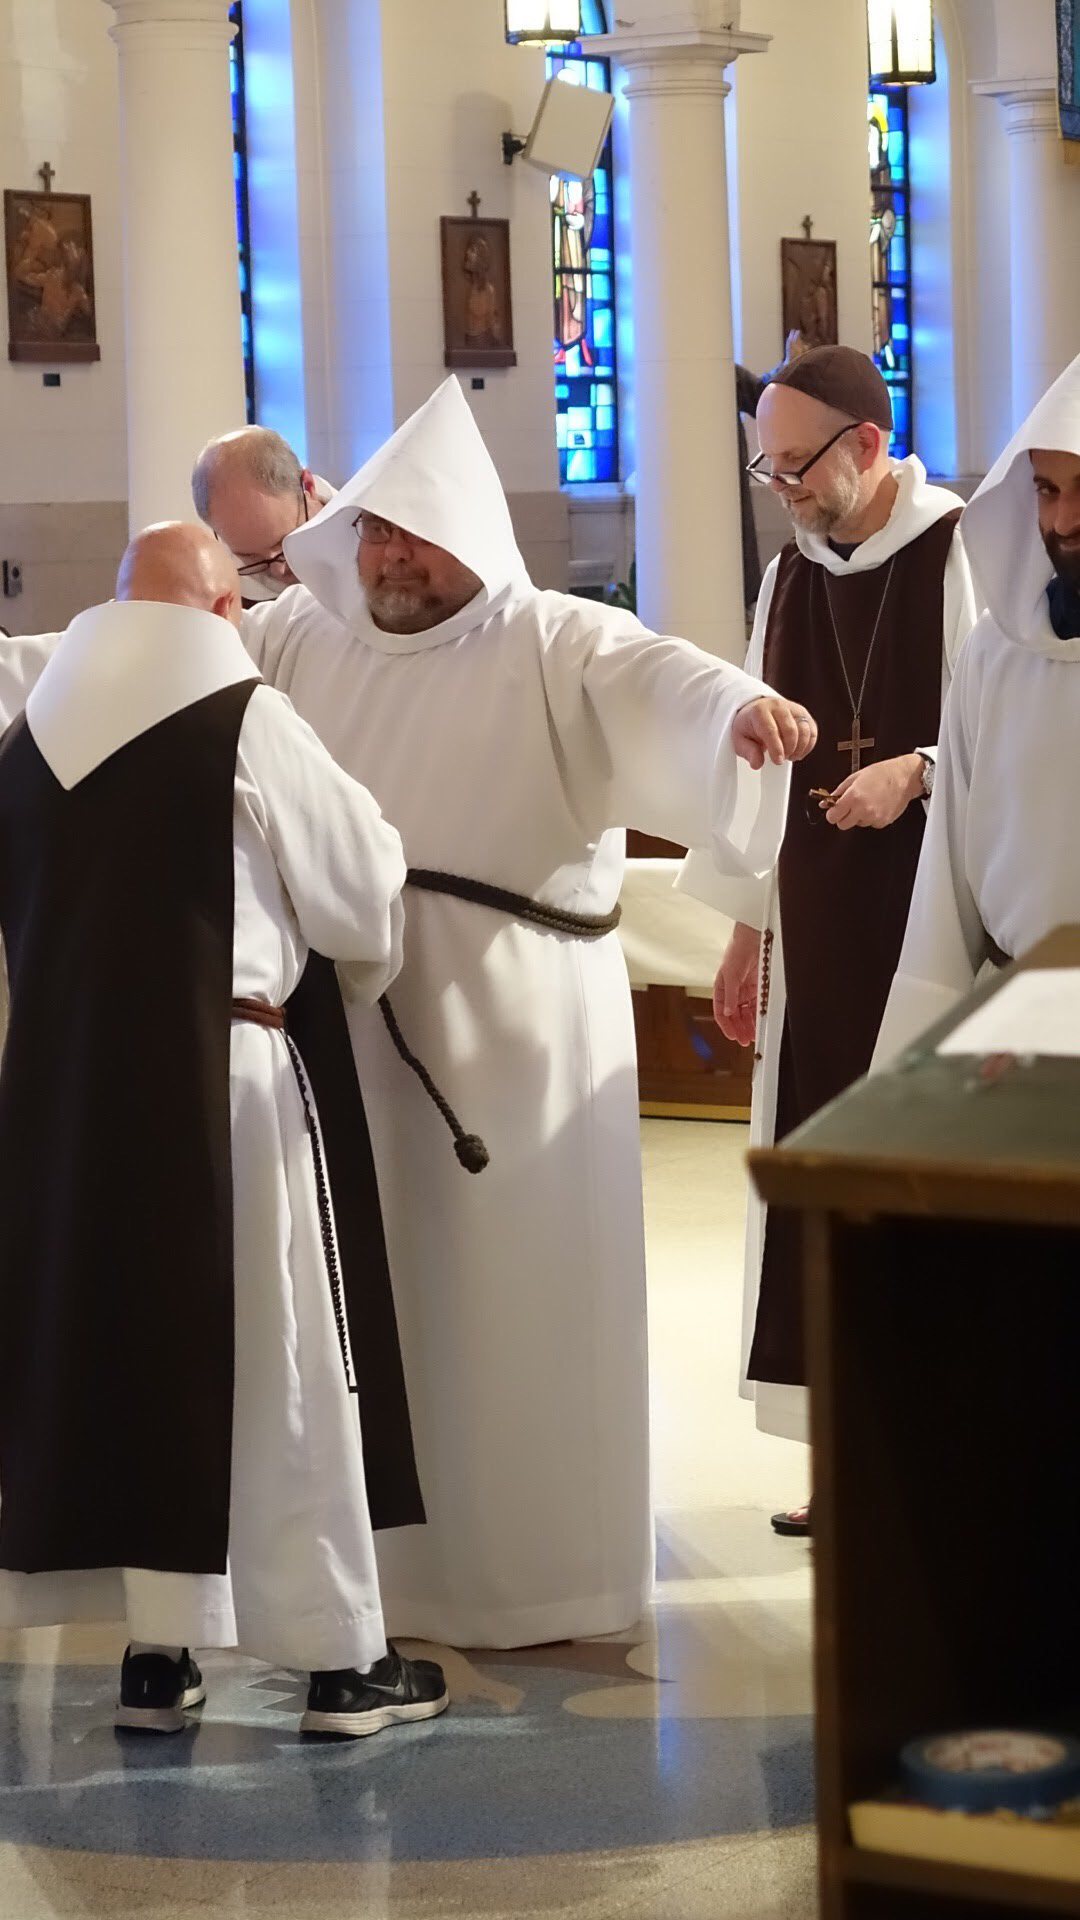 Clothing of novices